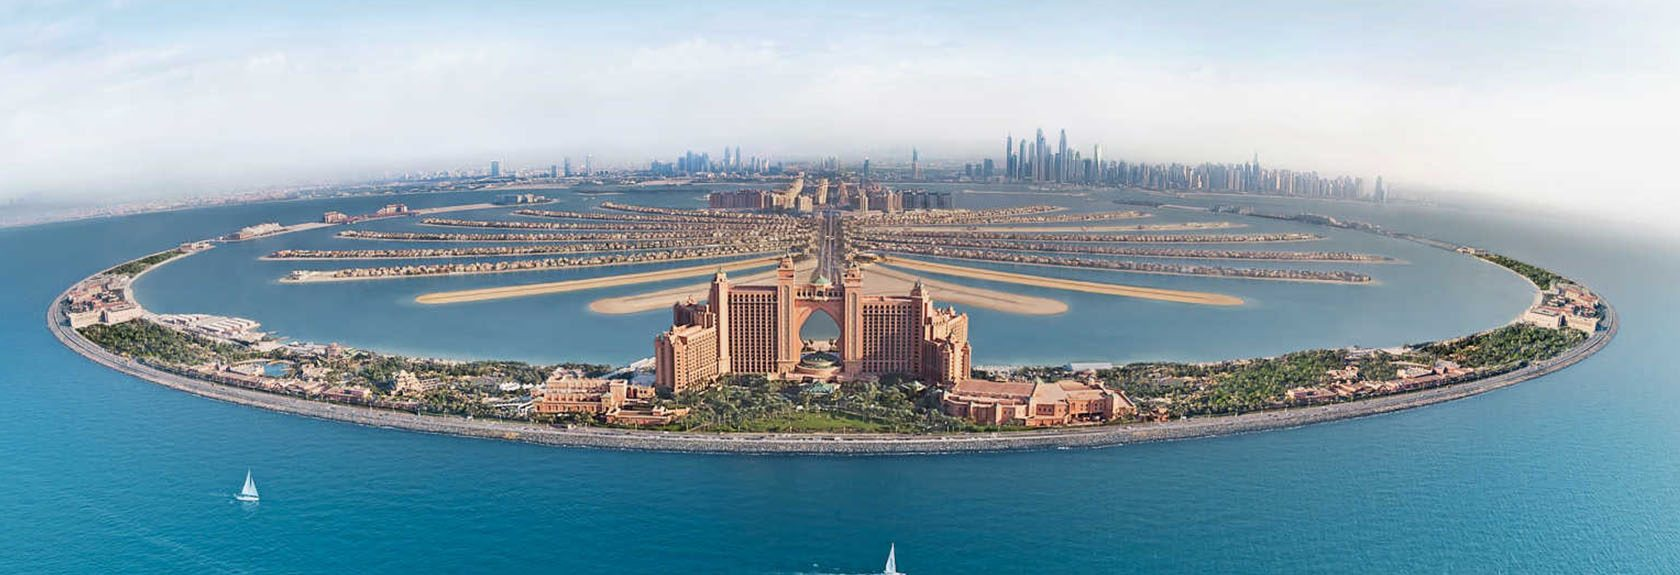 Cruise along the Palm Jumeirah Island